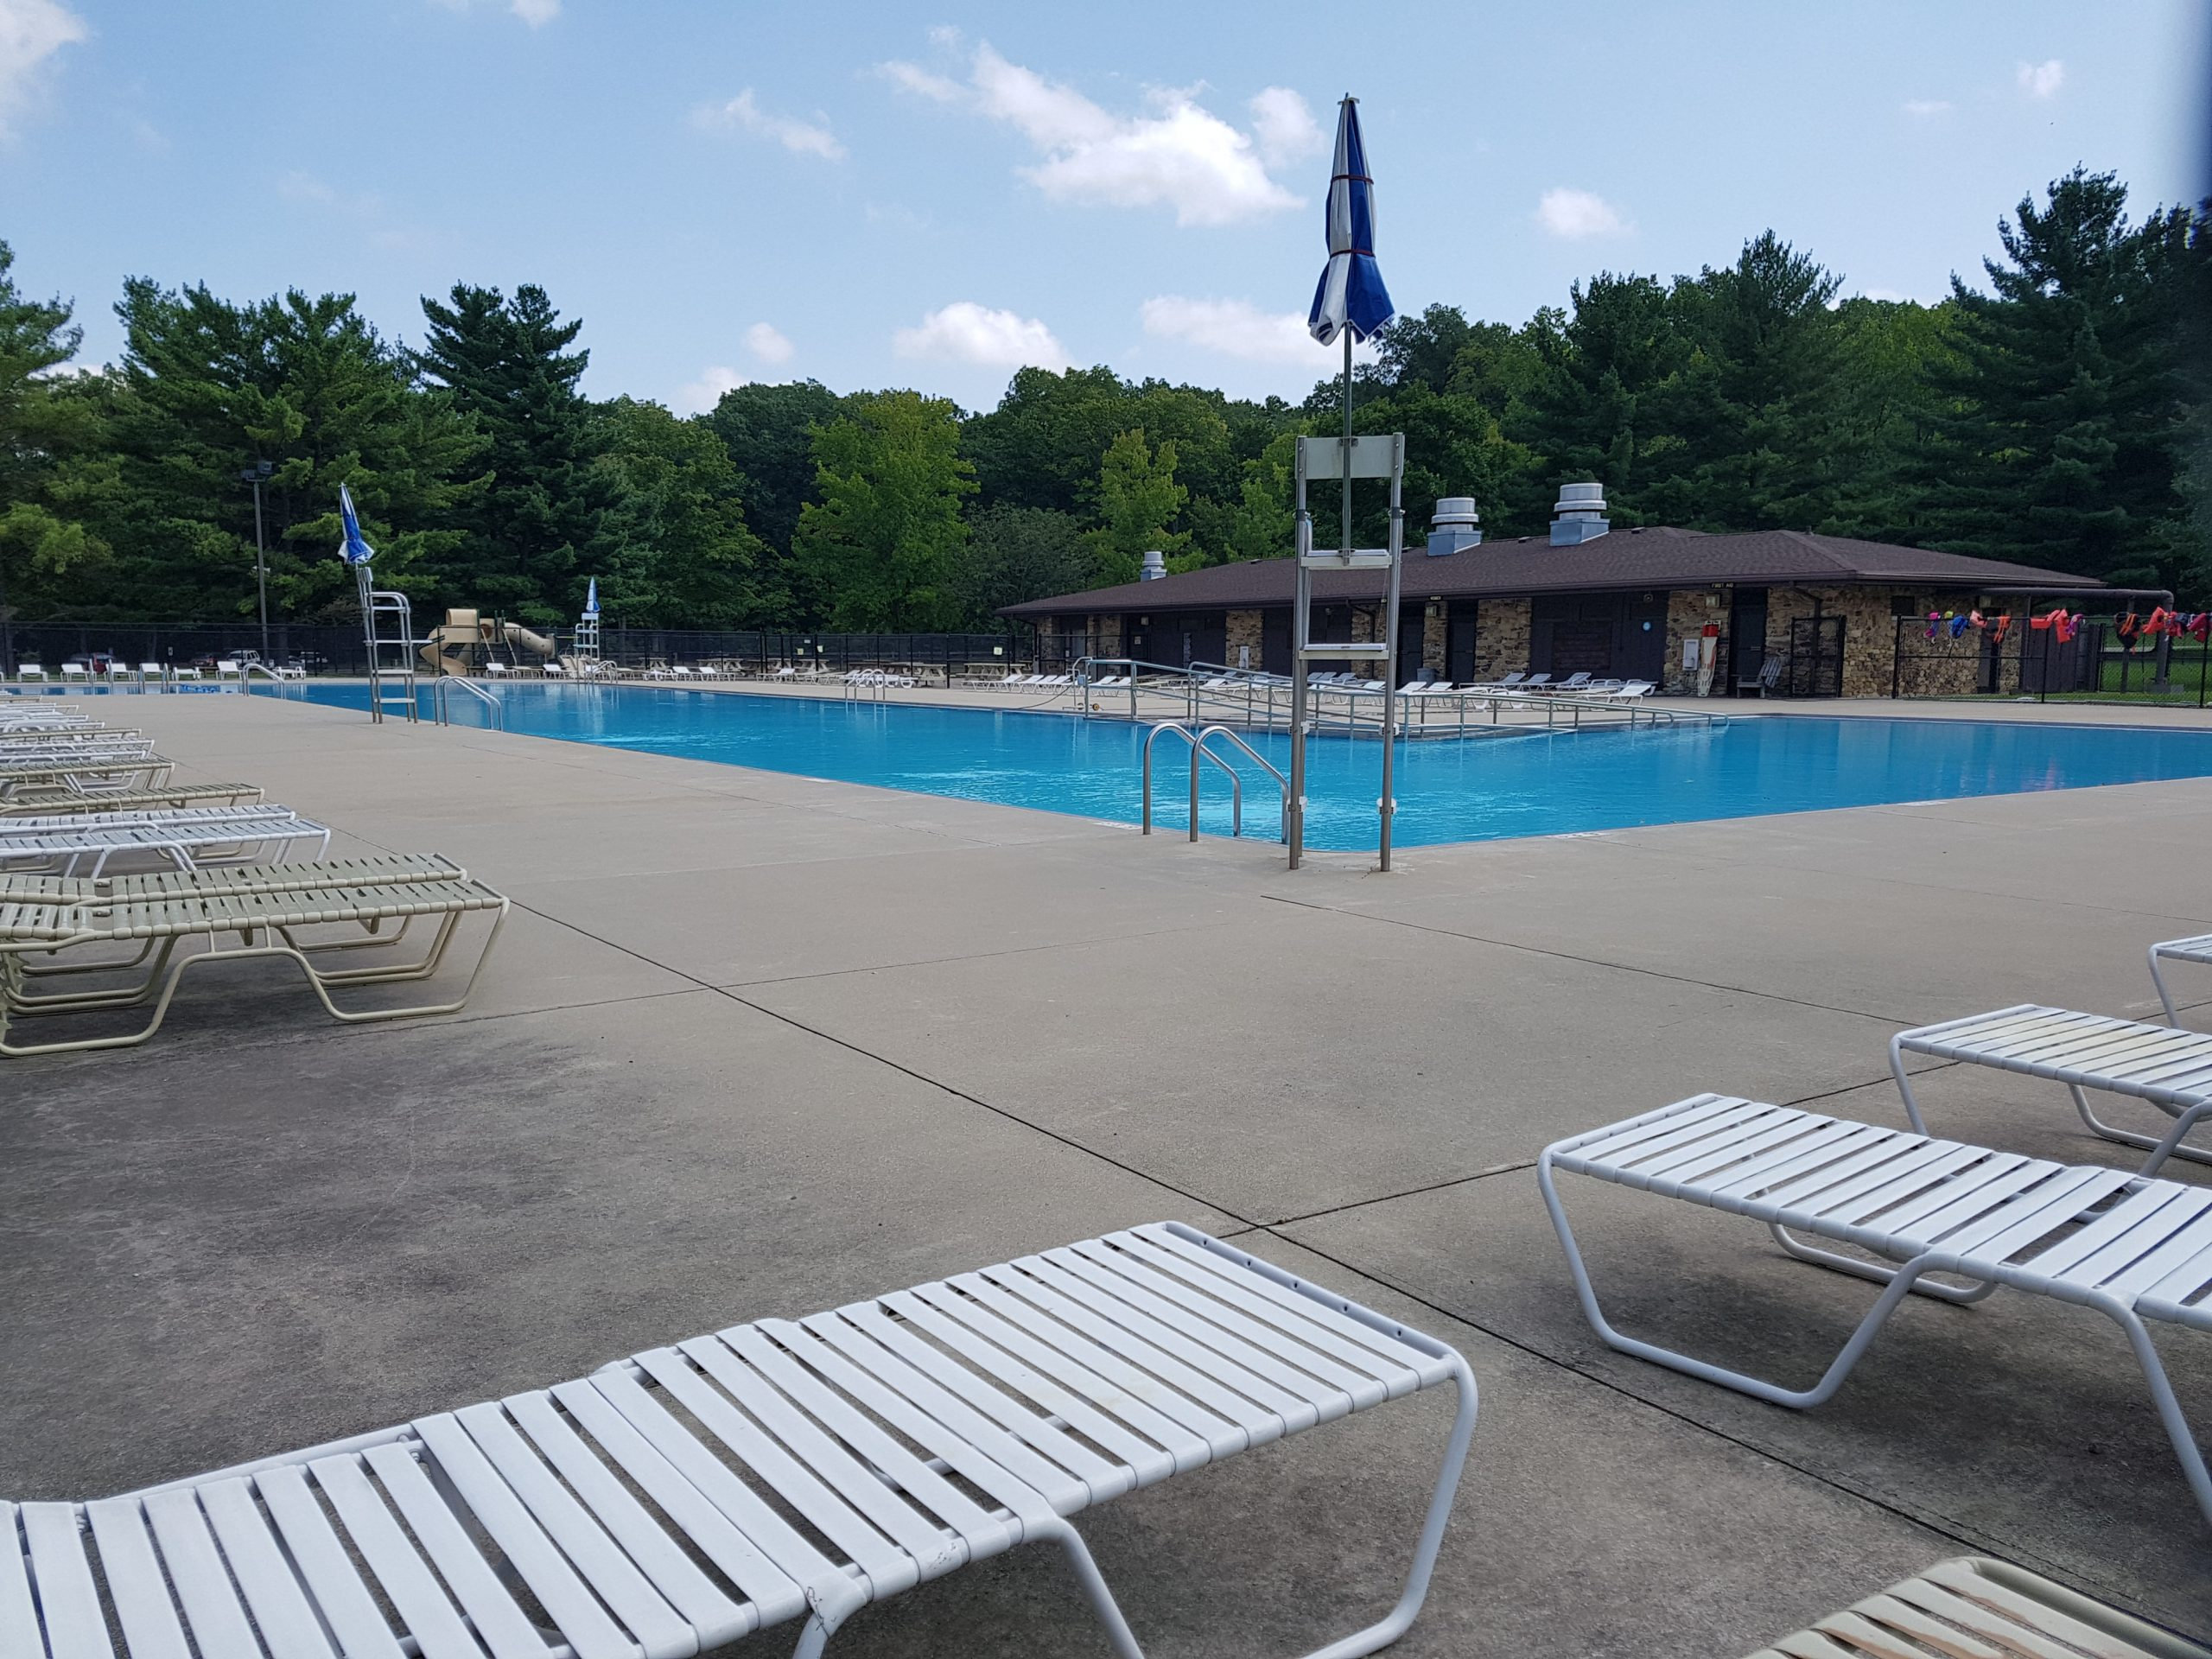 Outdoor Swimming Pool at Turkey Run State Park